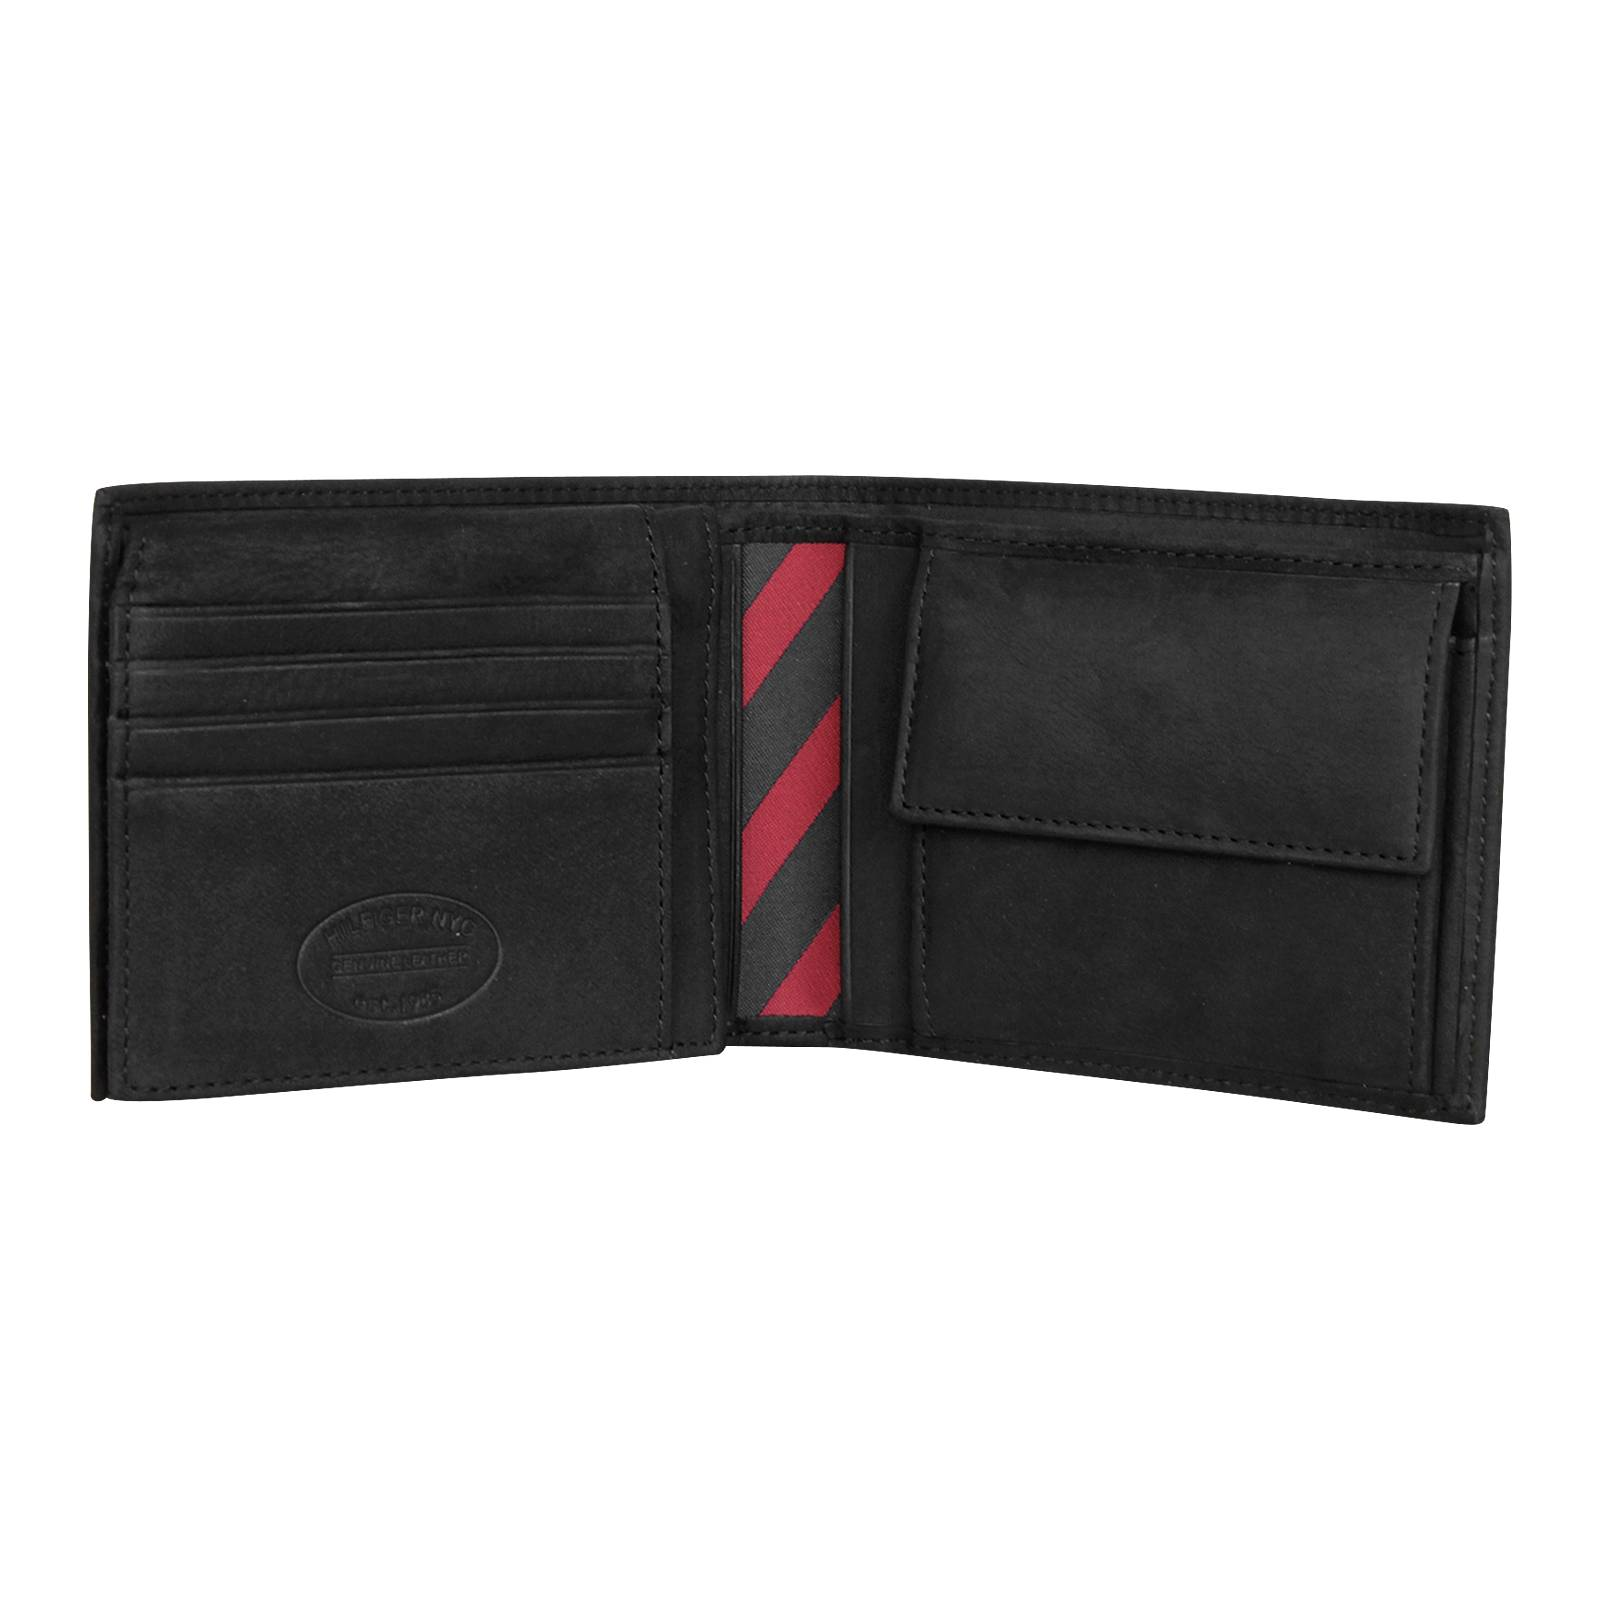 Johnson CC Flap - Tommy Hilfiger Men's Wallet made of leather ...